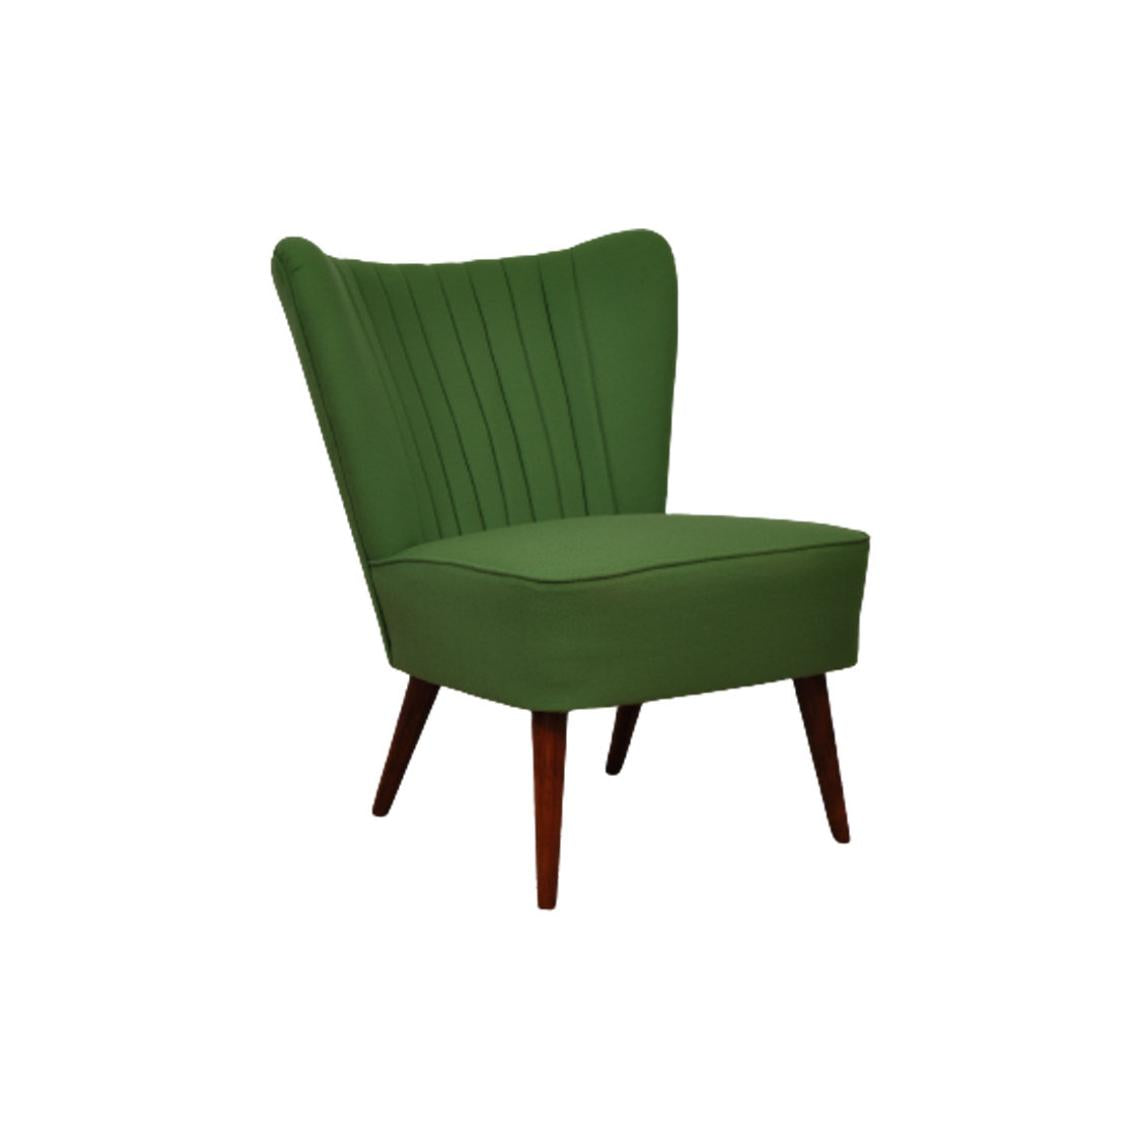 1950s cocktail chair in citrus green